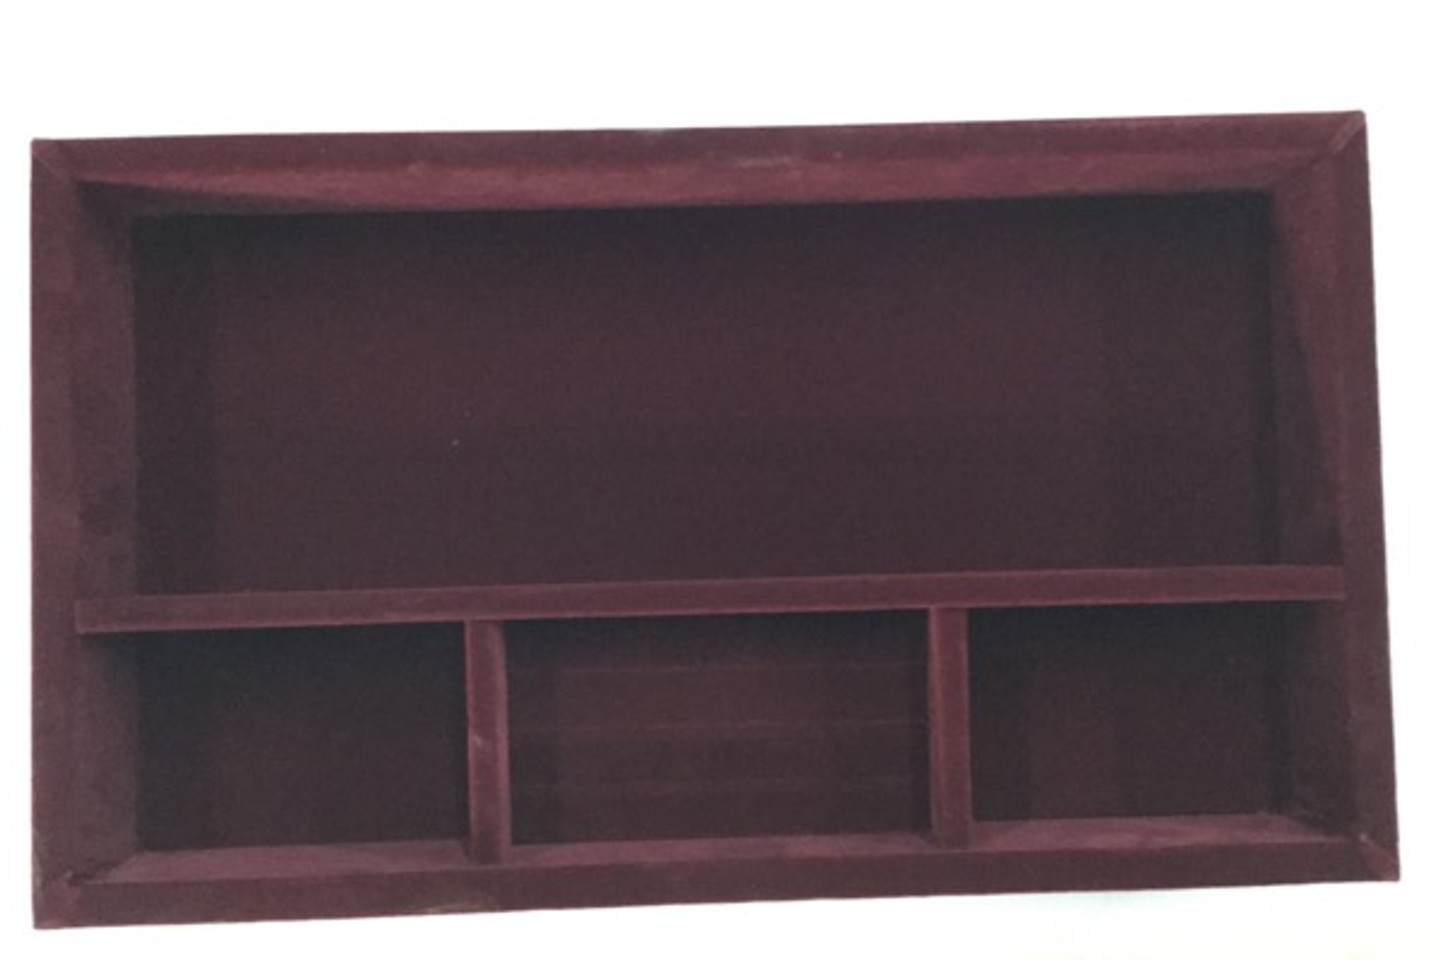 The custom fit liner for this kit adds softness and organization to this chest